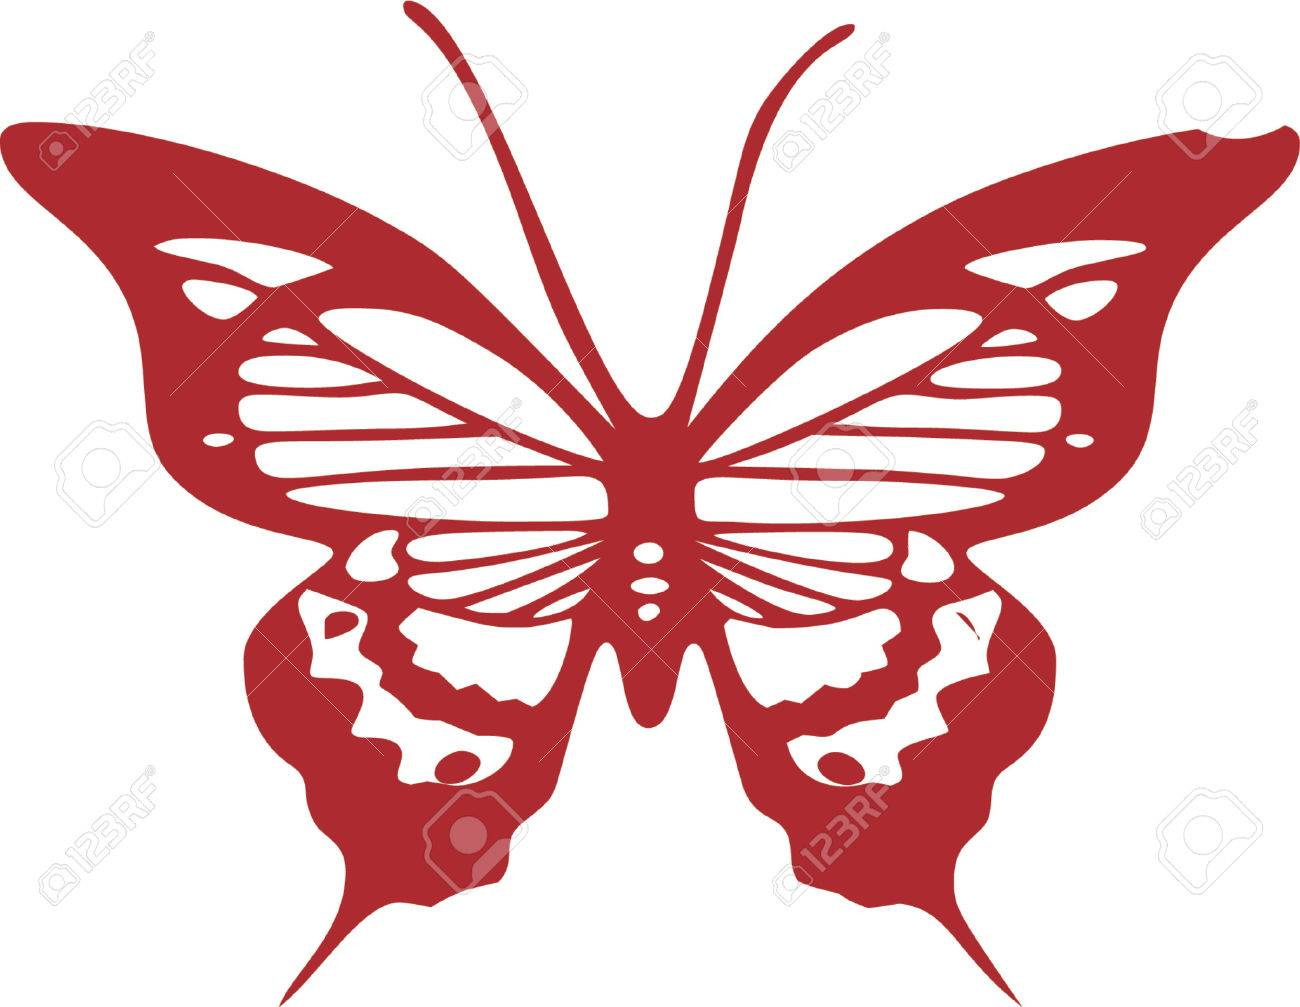 butterfly clip art design illustration royalty free cliparts